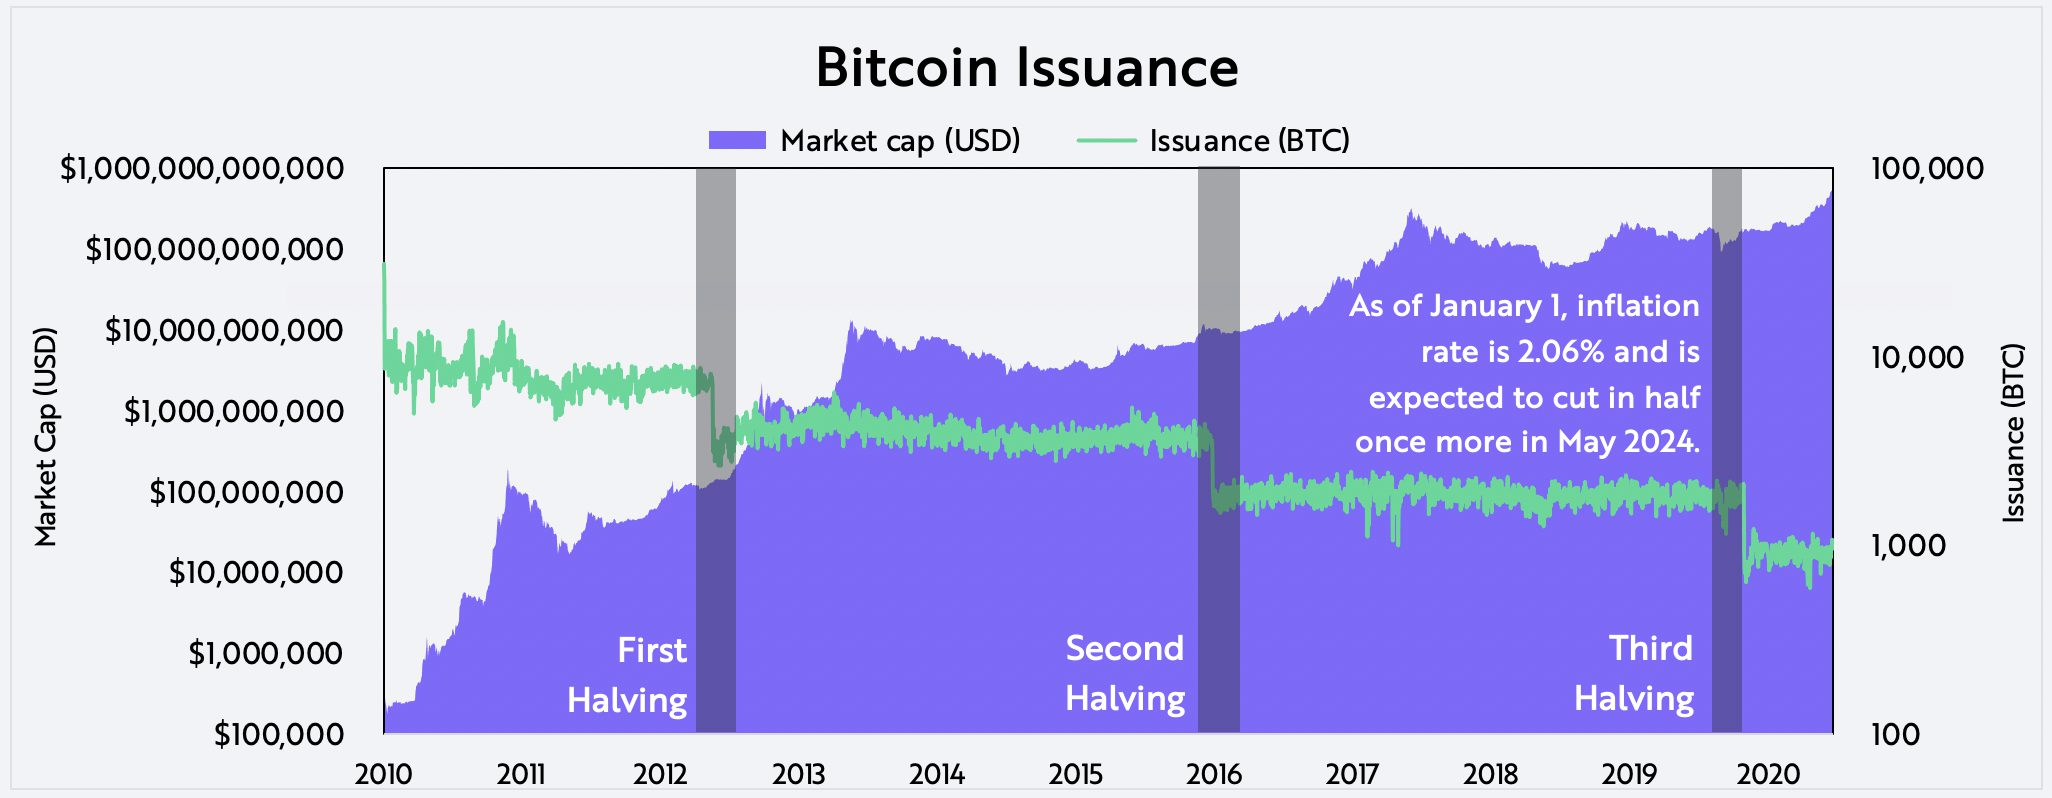 Evaluating Bitcoin Issuance on-chain data